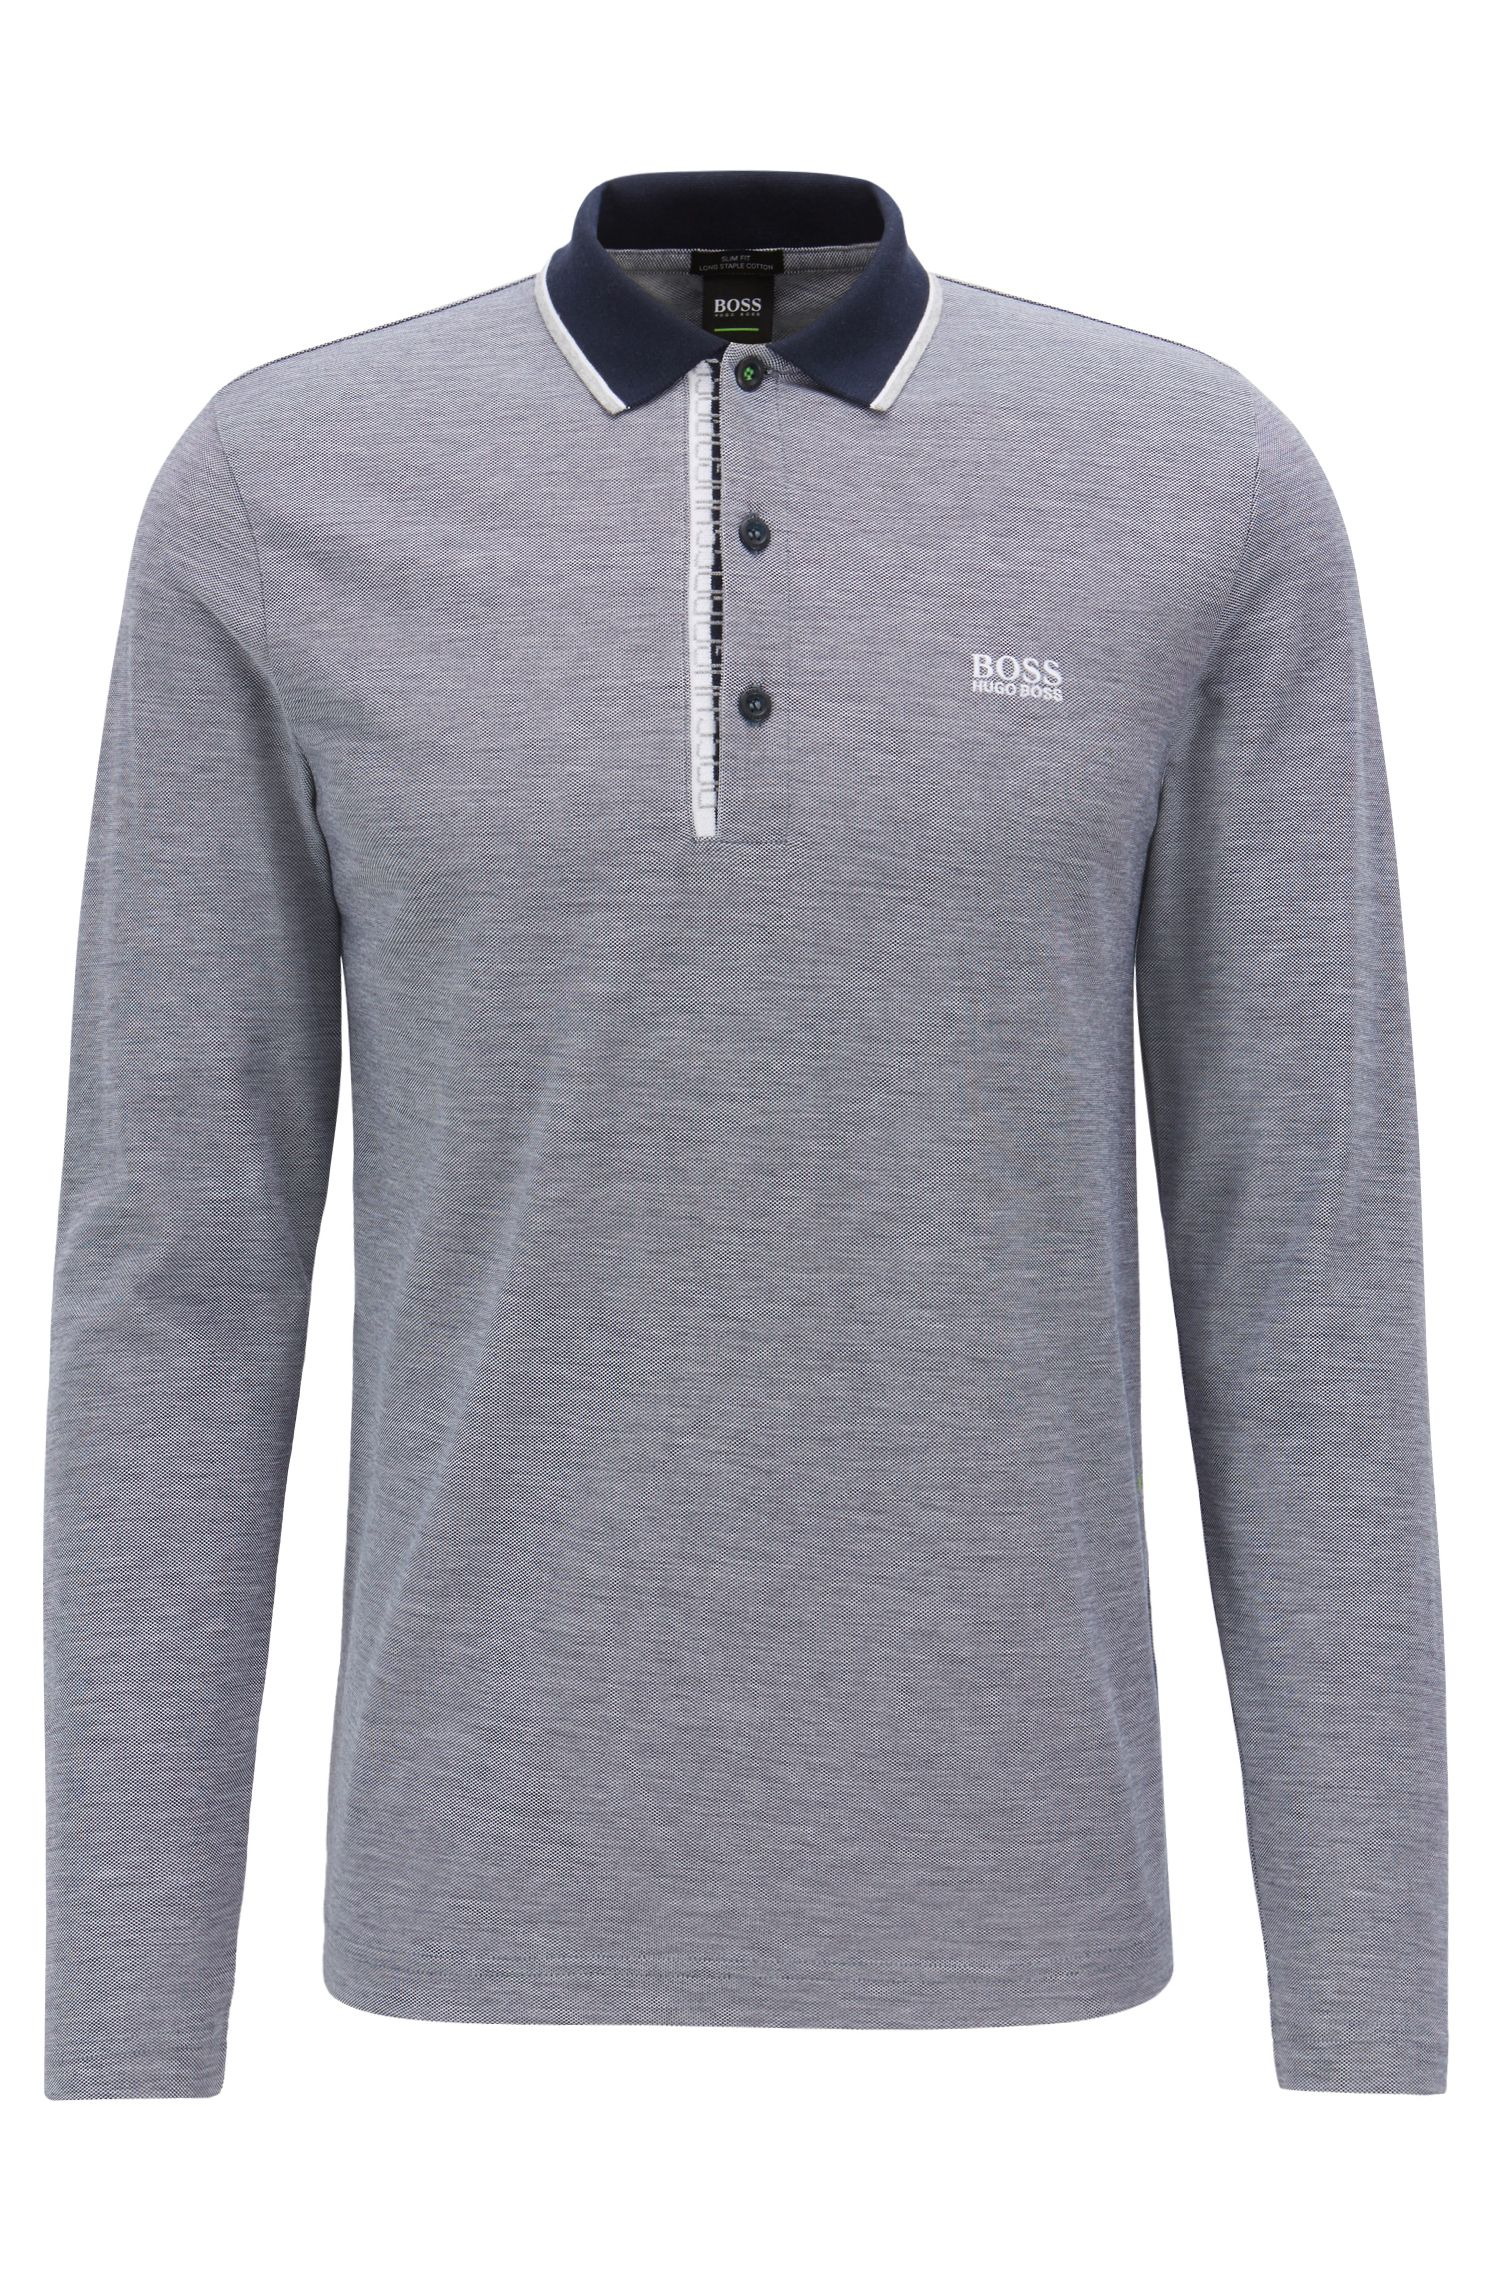 Long-sleeved polo shirt in cotton with logo detail